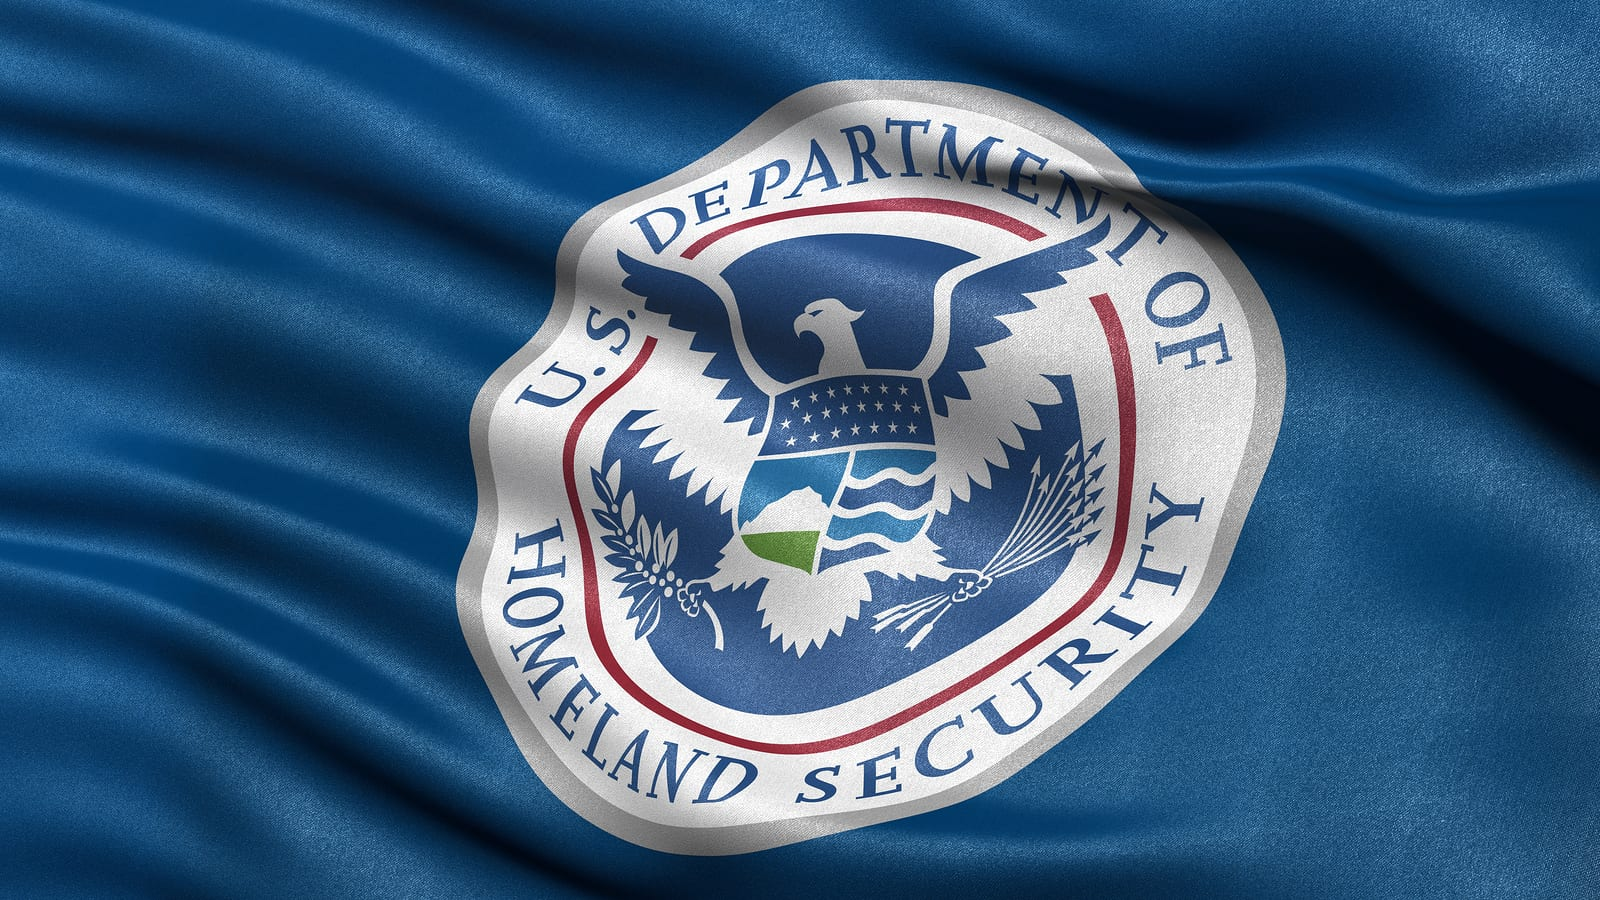 Homeland Security News: Readout from Acting Secretary McAleenan's Trip to McAllen